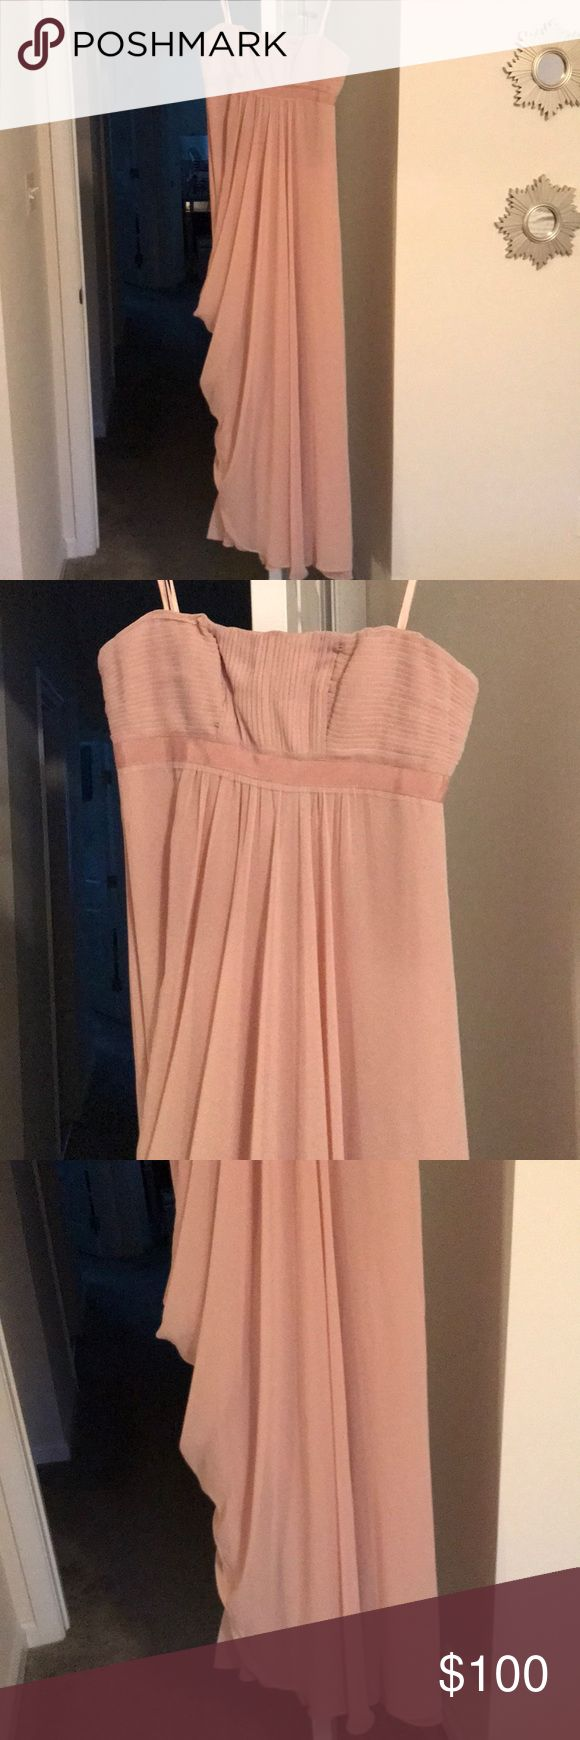 BCBG gown Brand new with tags. Color is bare pink. Chiffon gown. Strapless. Minor snag on bustline. Zips ip in the back. BCBGMaxAzria Dresses